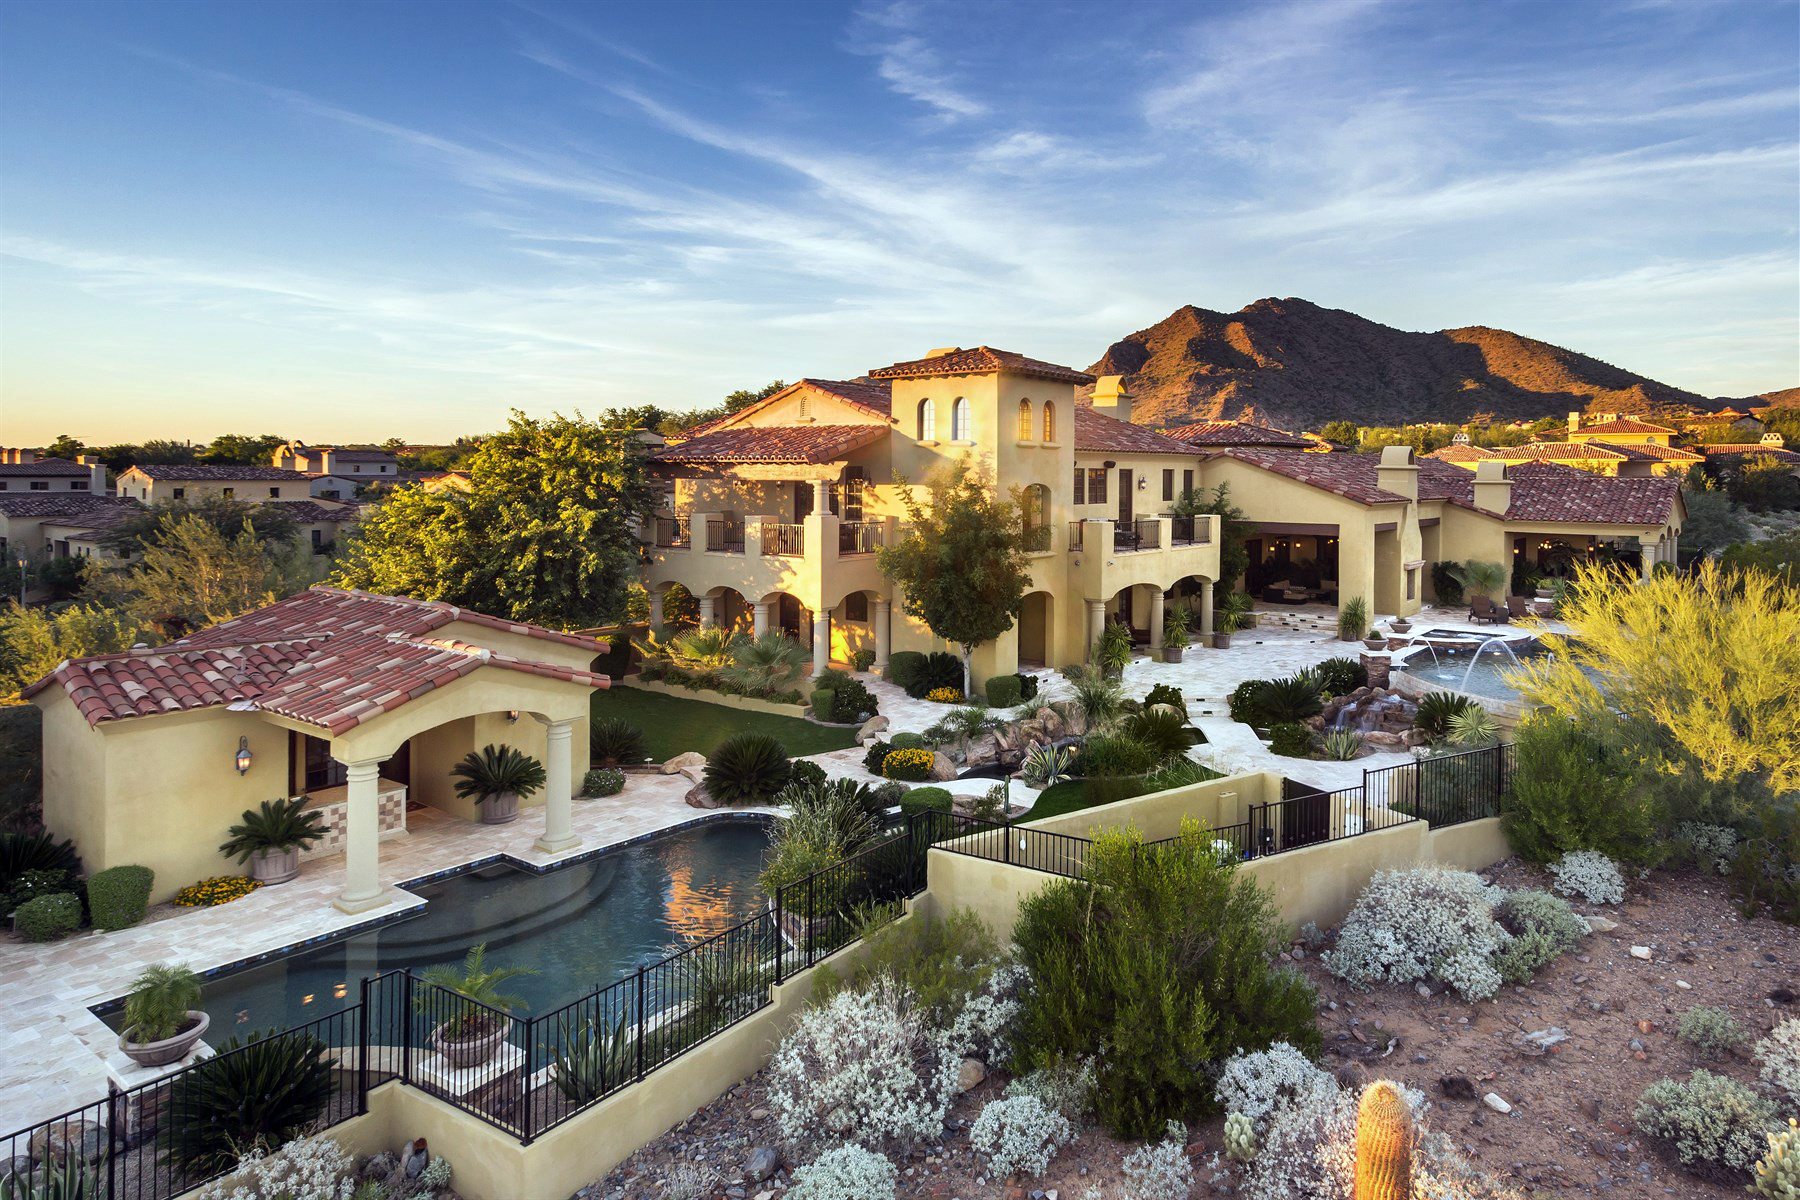 Maison unifamiliale pour l Vente à Deluxe Custom Residence In The Esteemed Exclusive Community Of Silverleaf 10211 E Chino Drive #1149 Scottsdale, Arizona 85255 États-Unis